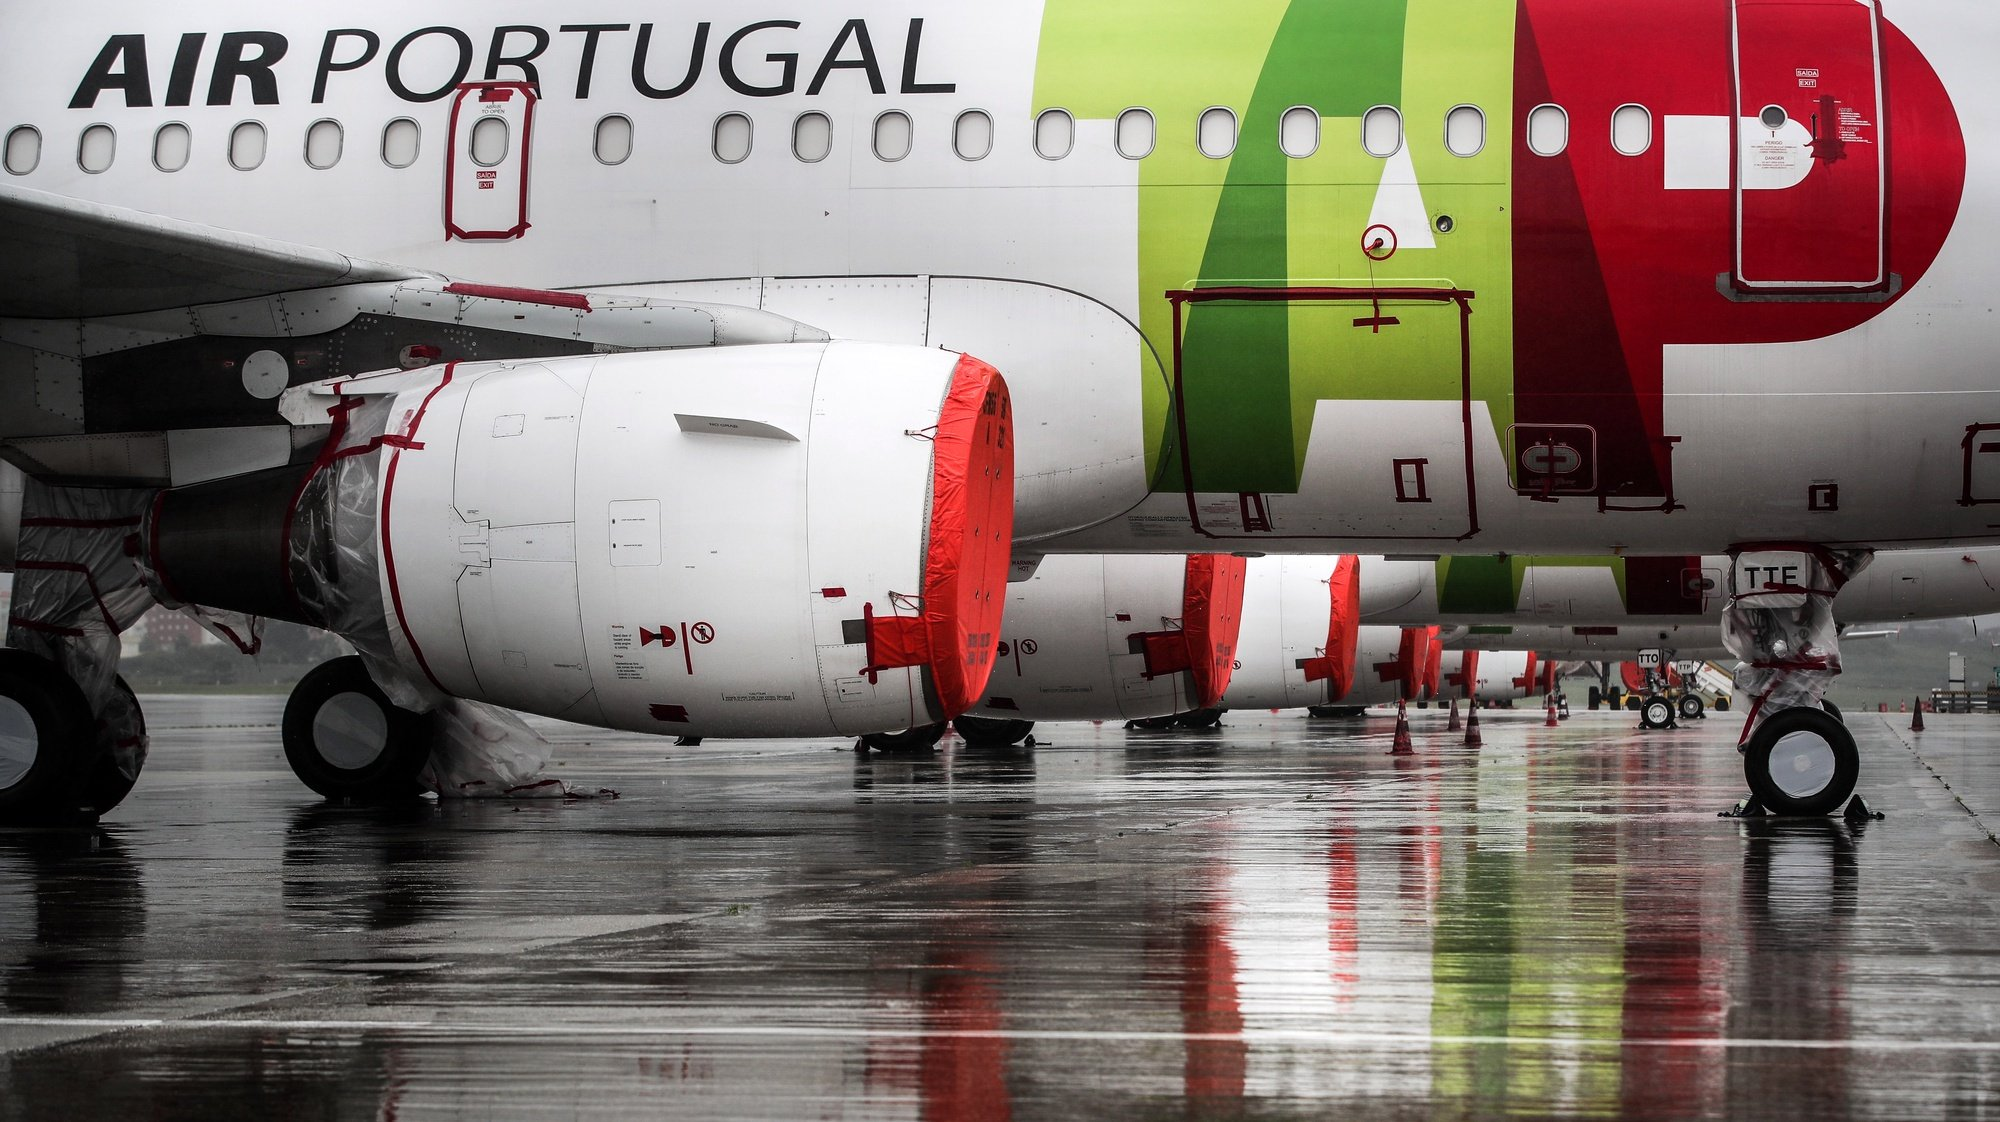 File photo dated from 09 April 2020 of TAP aircraft engines cover with plastic foil remain grounded at Humberto Delgado airport closed for passenger traffic as part of the exceptional traffic measures to combat the epidemiological situation of Covid-19, in Lisbon, Portugal, 09 April 2020 (reissued 02 July 2020). The granting of state support to TAP has been under discussion since the airline's activity came to a standstill because of the coronavirus pandemic, with an agreed injection of up to 1,200 million euros. MARIO CRUZ/LUSA